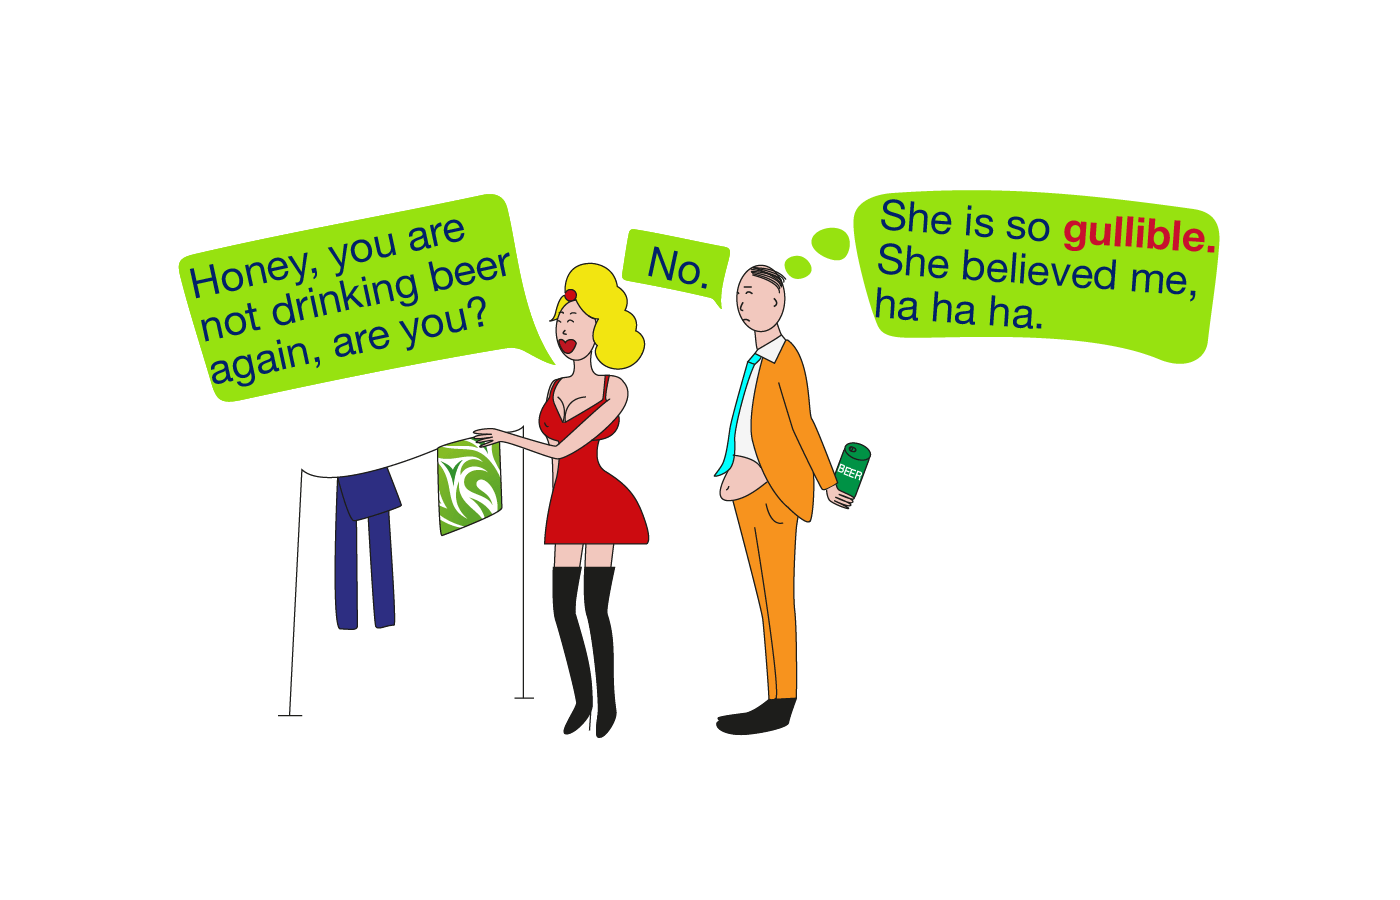 Gullible vocabulary meaning